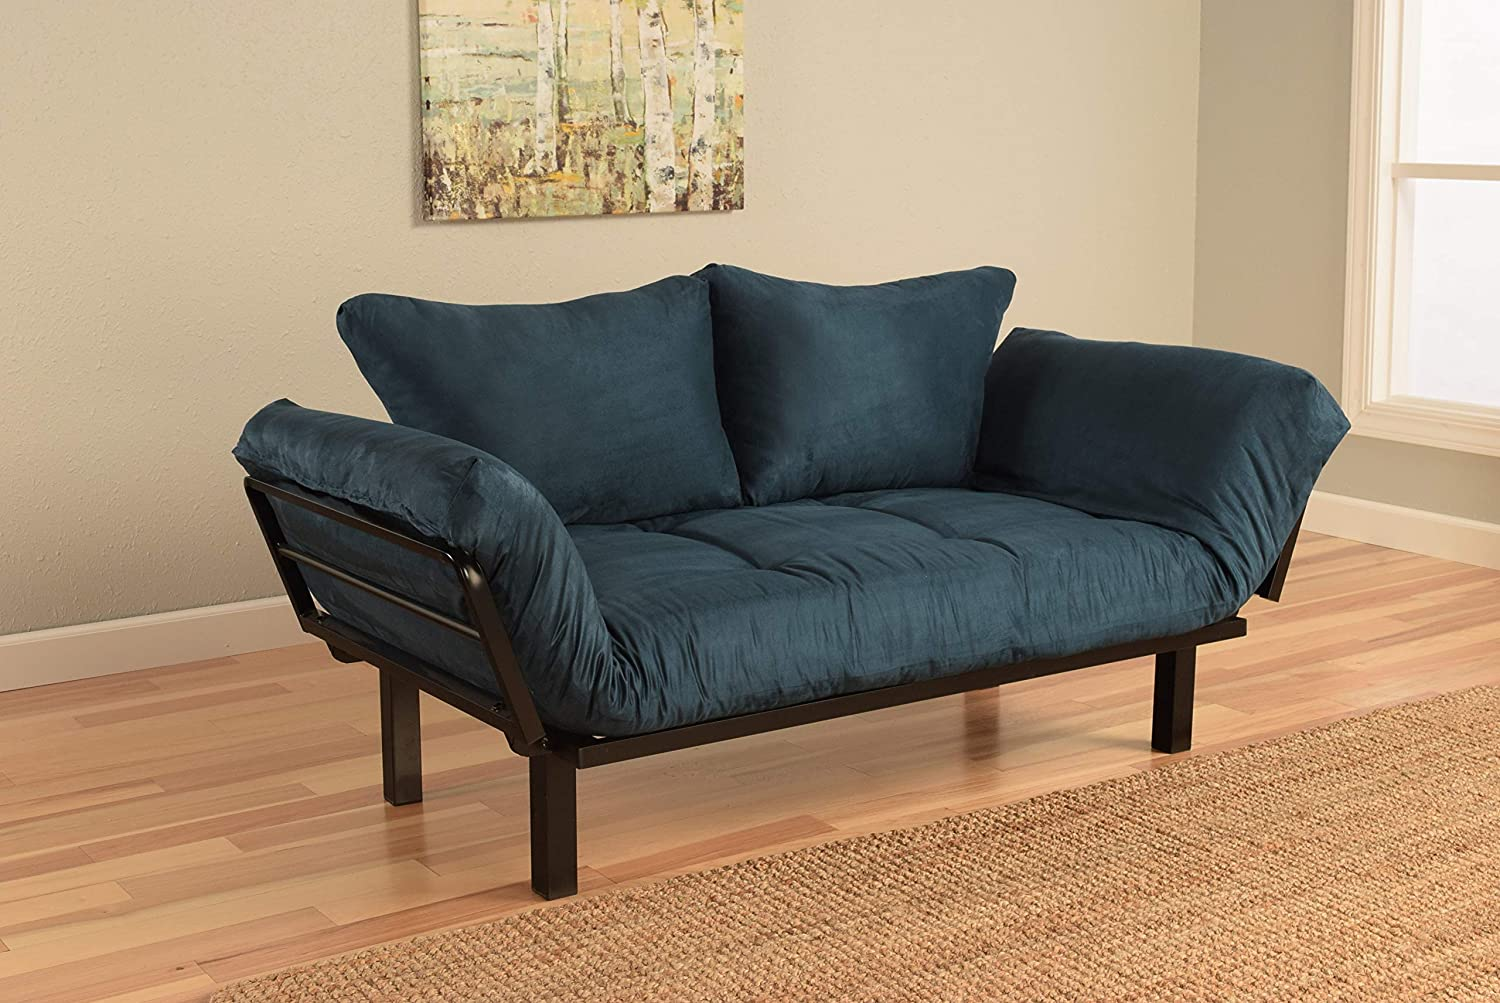 Jerry Sales Bright Day Twin Size Bed Futon Metal Frame Navy Many Color Fabrics to Choose